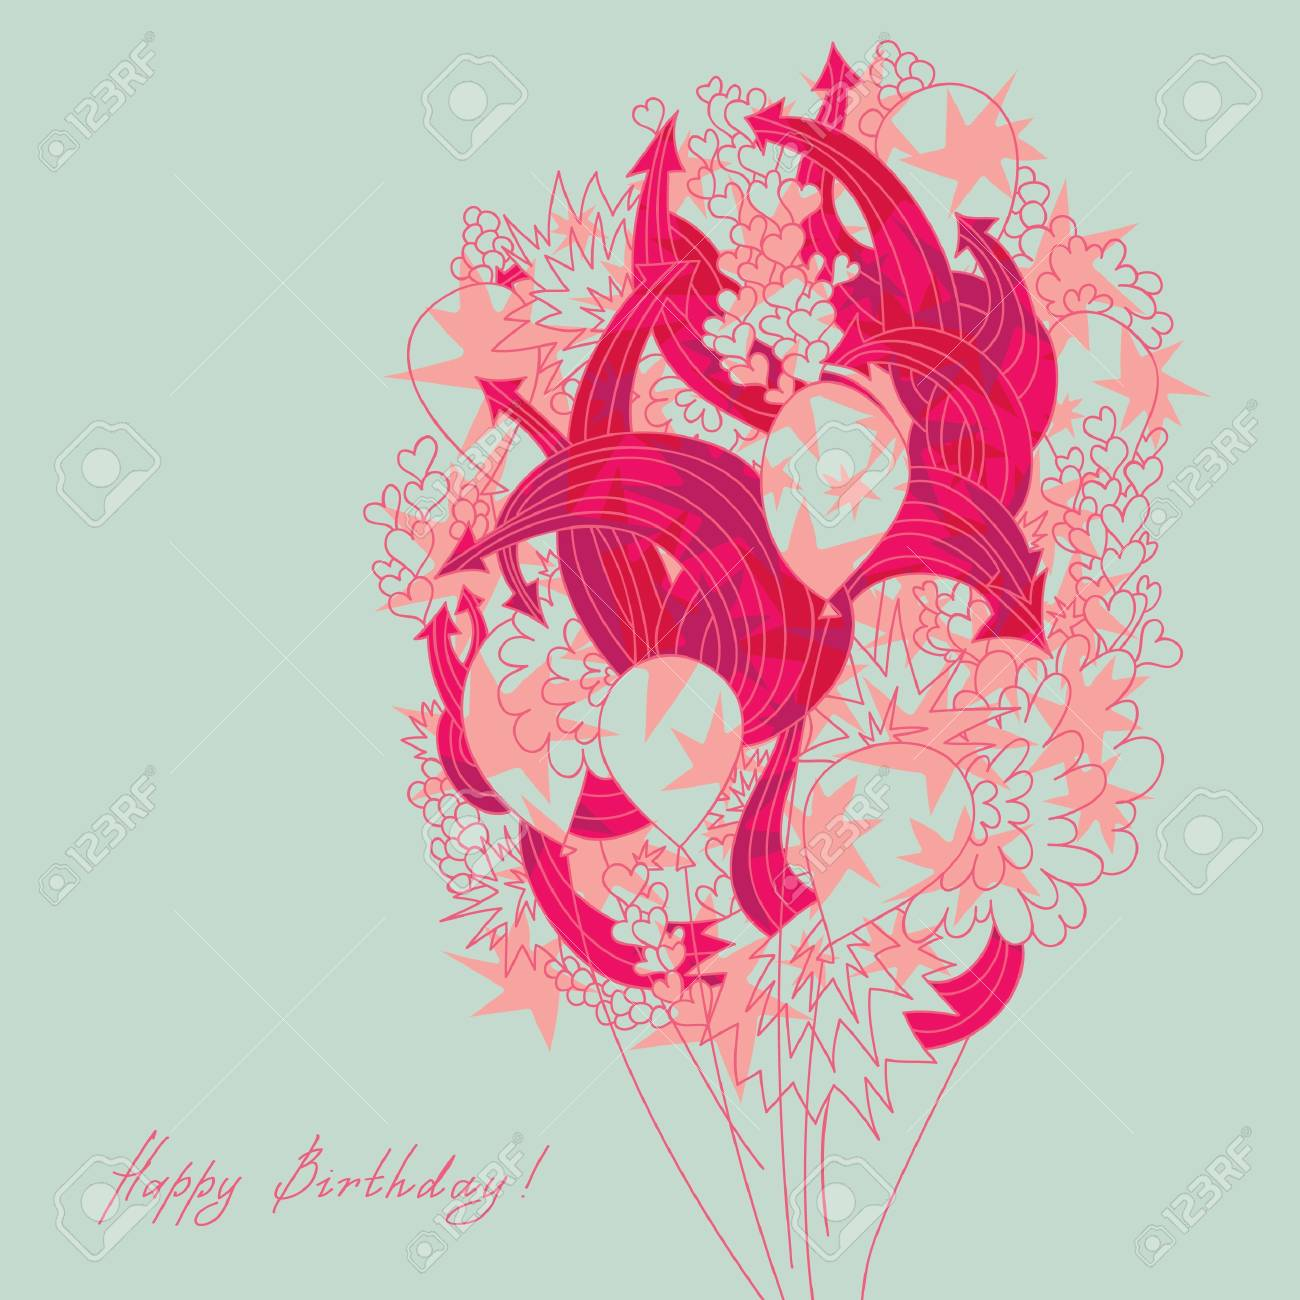 Greeting card with a bundle of balloons, decorated with hearts and arrows Stock Vector - 19899422